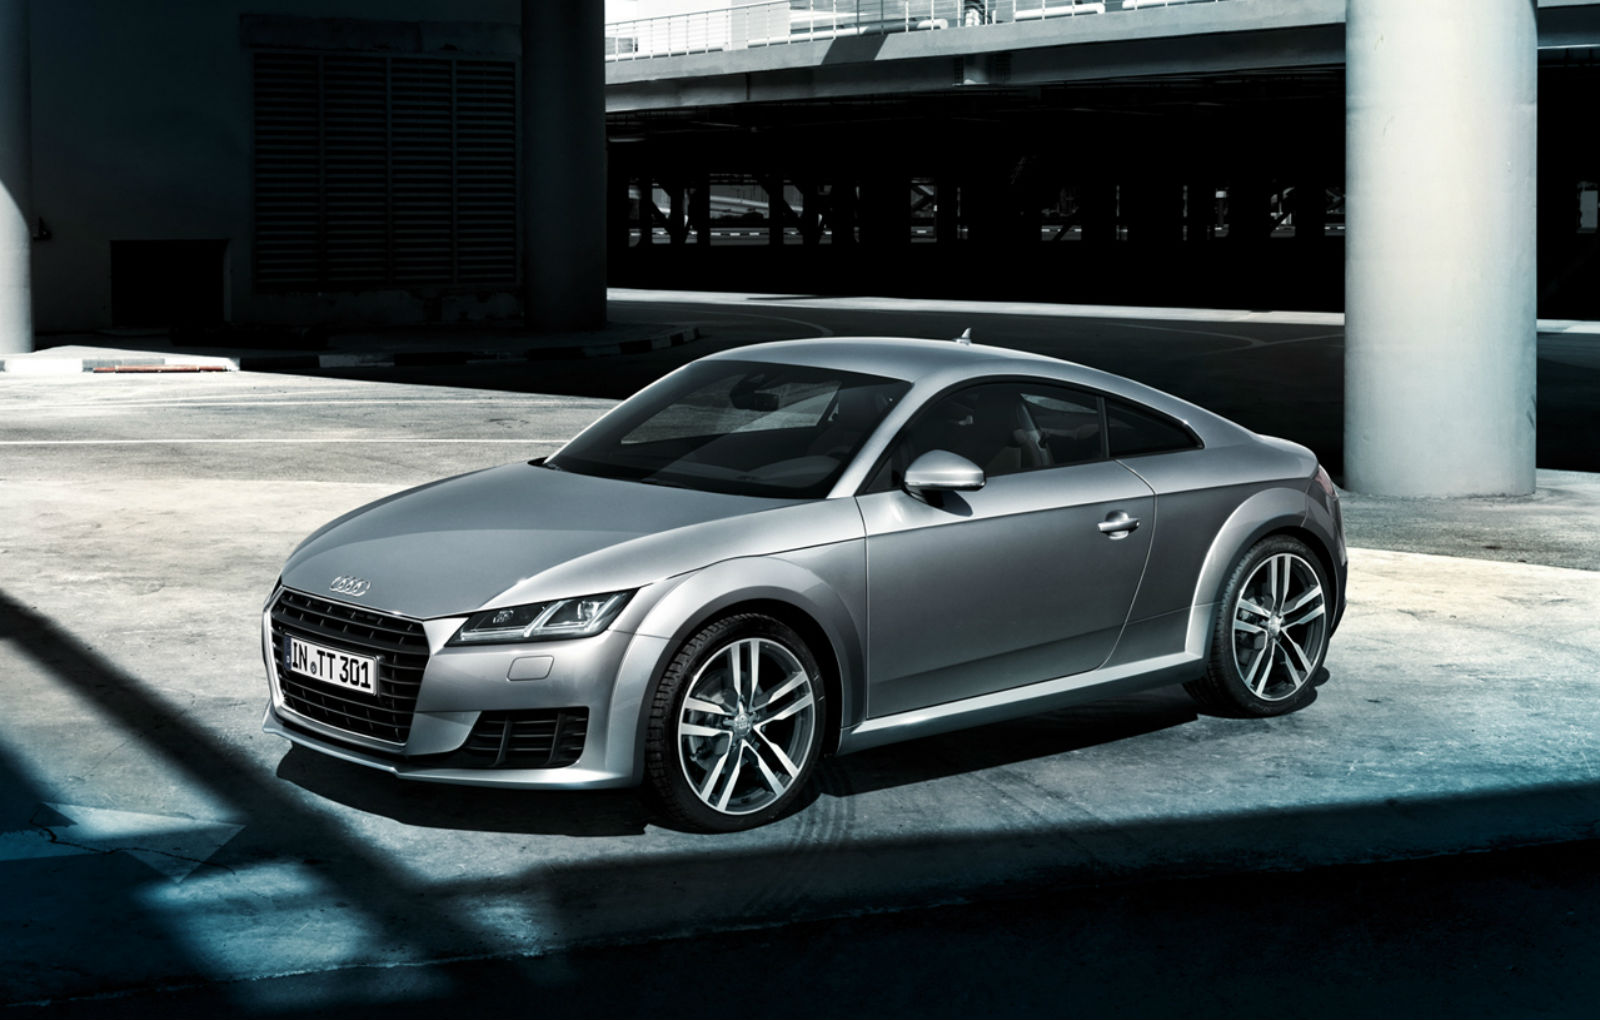 2015 Audi TT Sport Car Wallpaper   HD 1600x1020